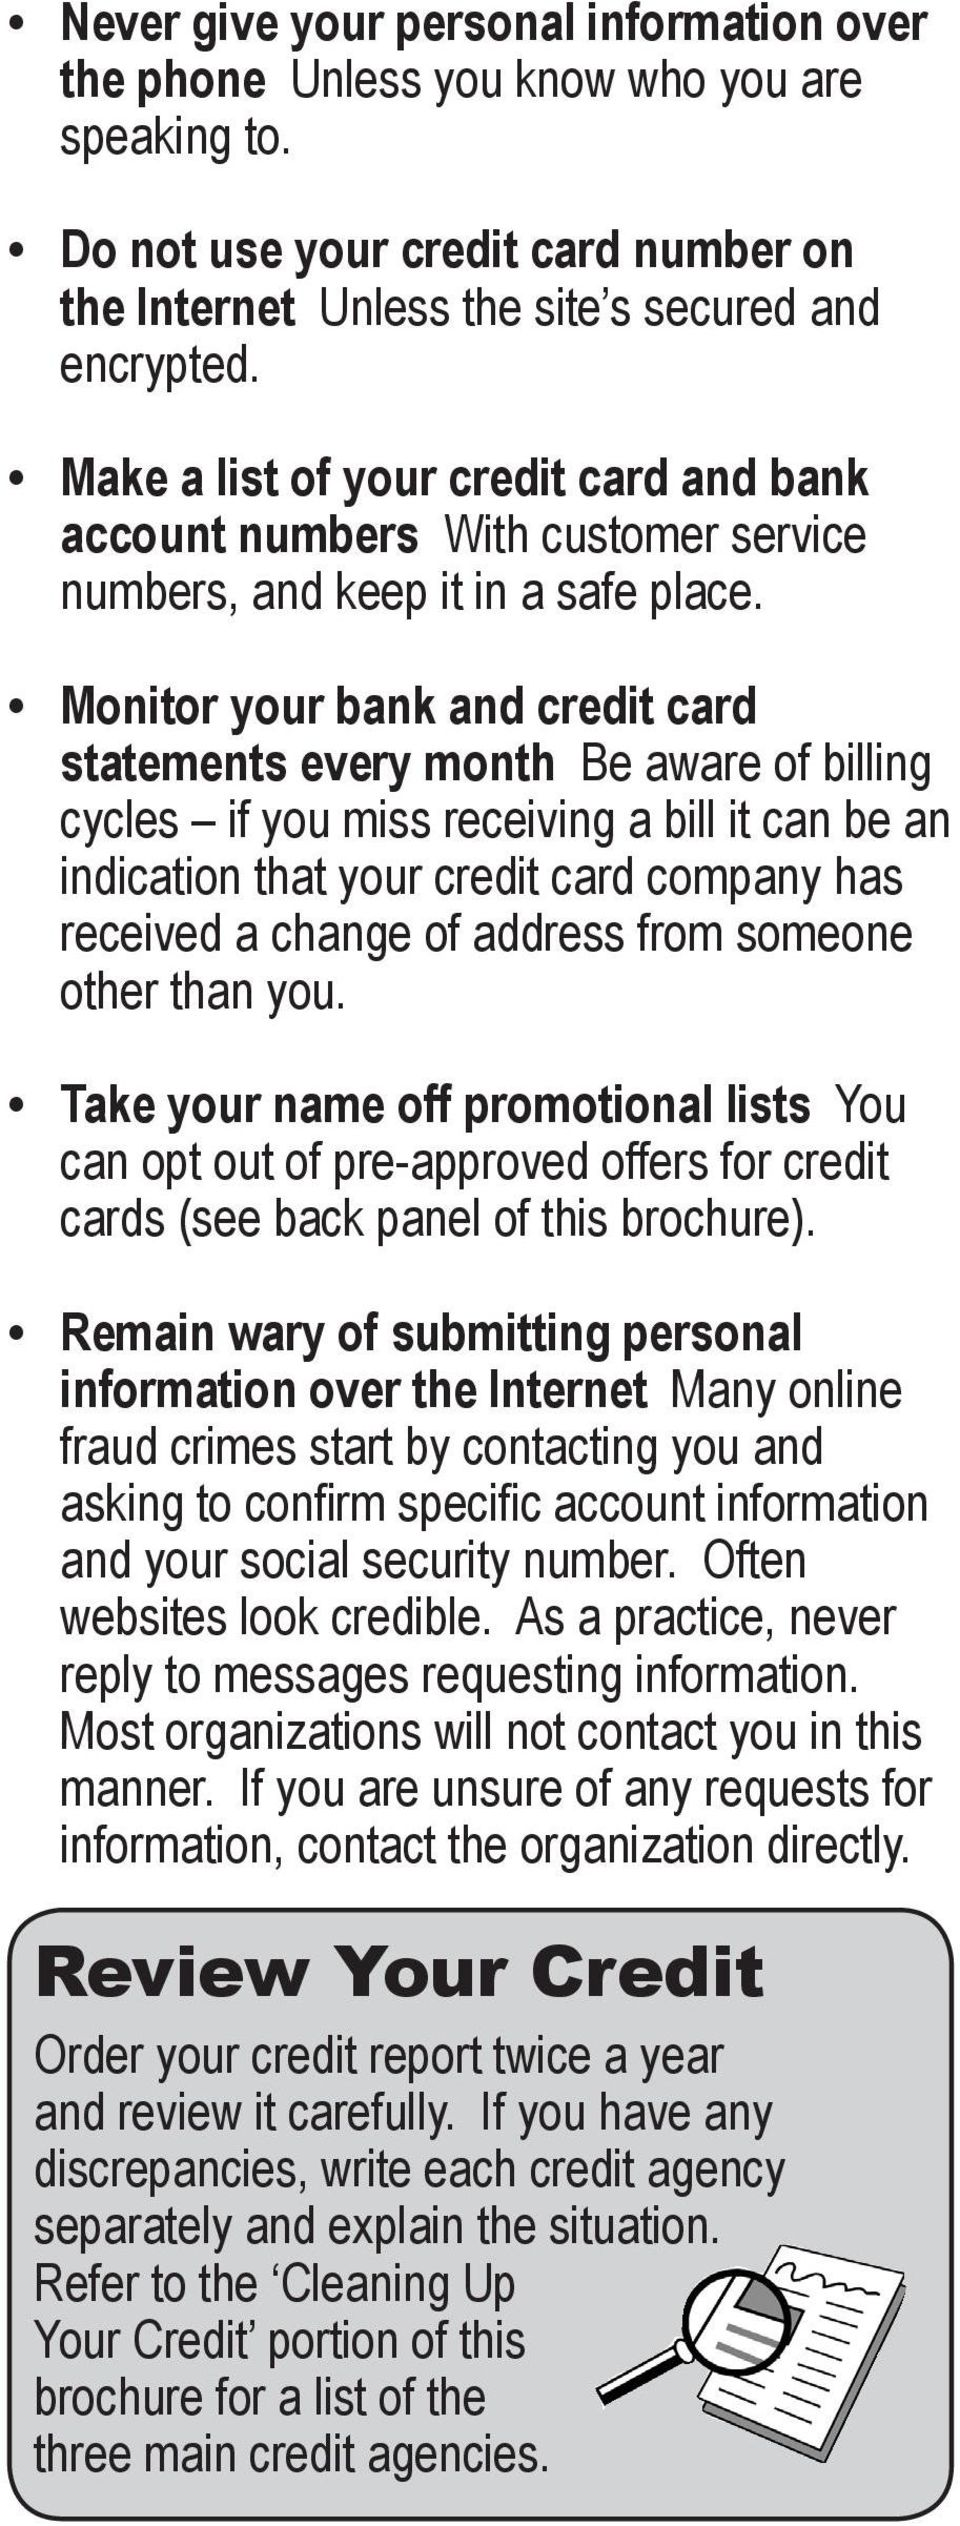 Monitor your bank and credit card statements every month Be aware of billing cycles if you miss receiving a bill it can be an indication that your credit card company has received a change of address